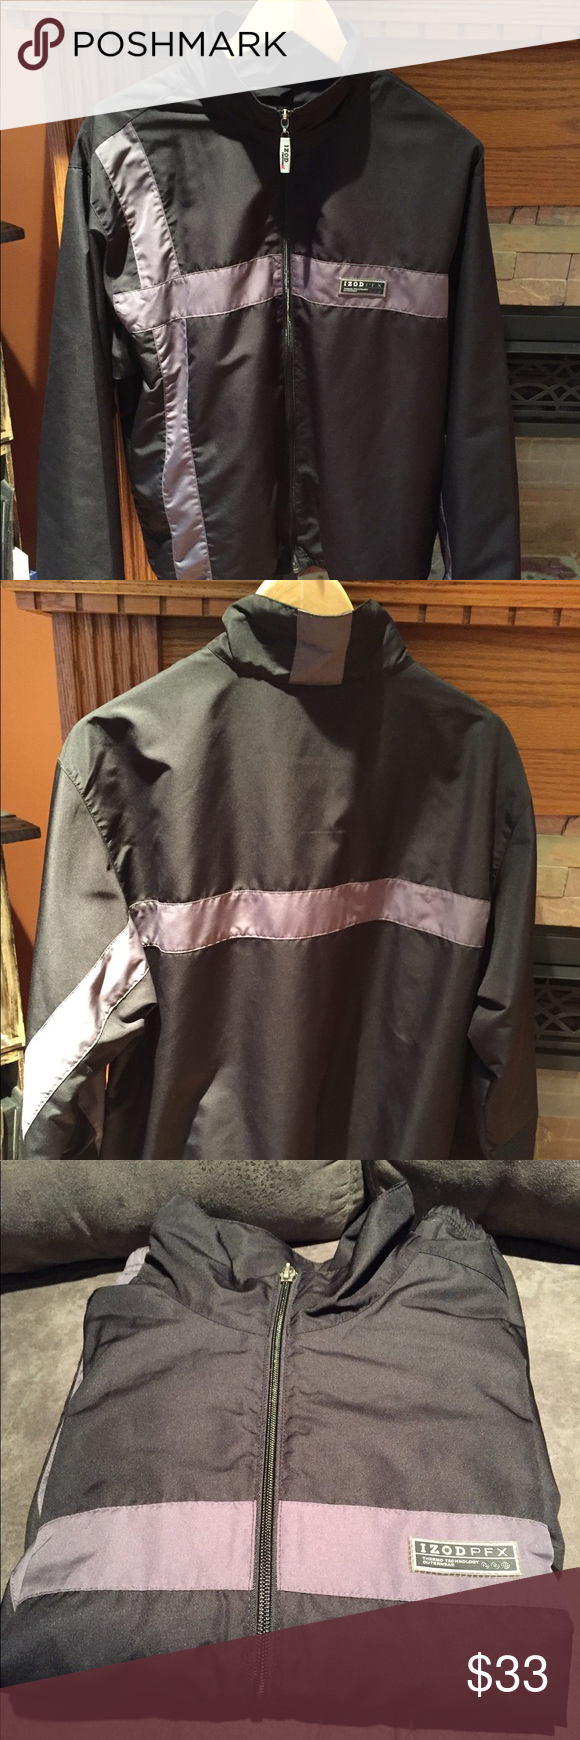 Izod Pfx Thermo Active Outerwear Jacket Outerwear Jackets Jackets Outerwear [ 1740 x 580 Pixel ]